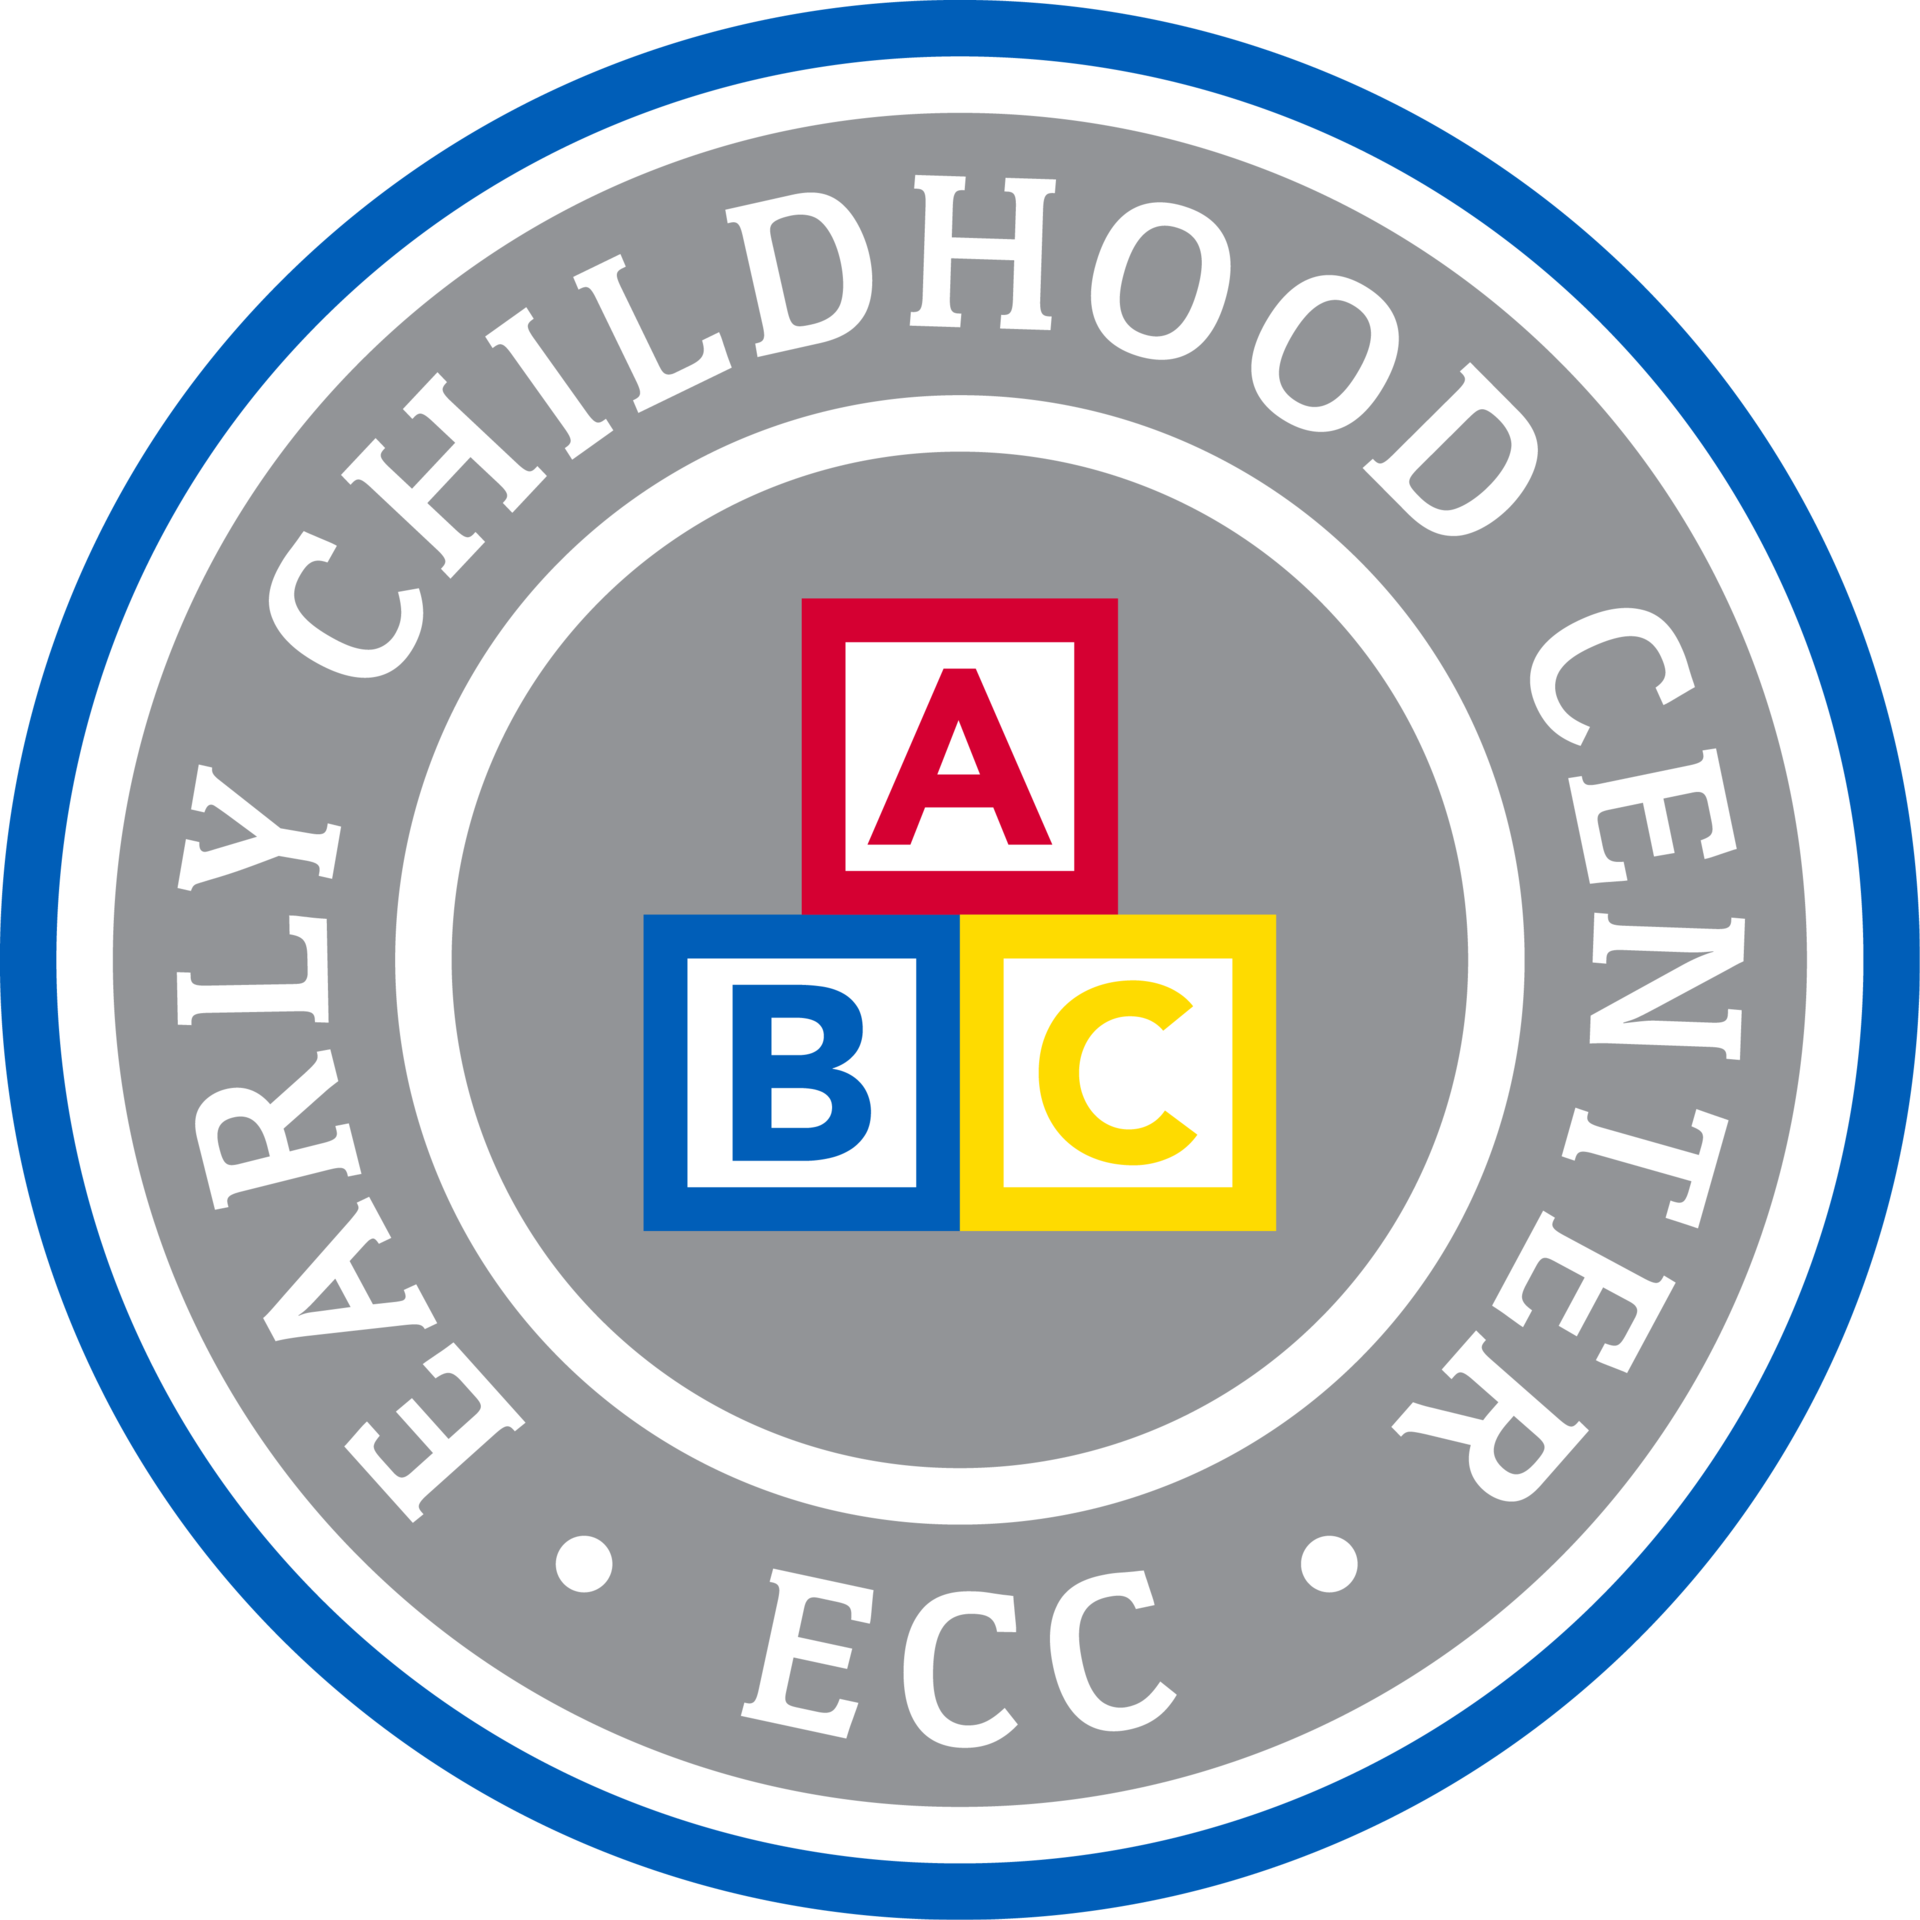 Early Childhood Center seal